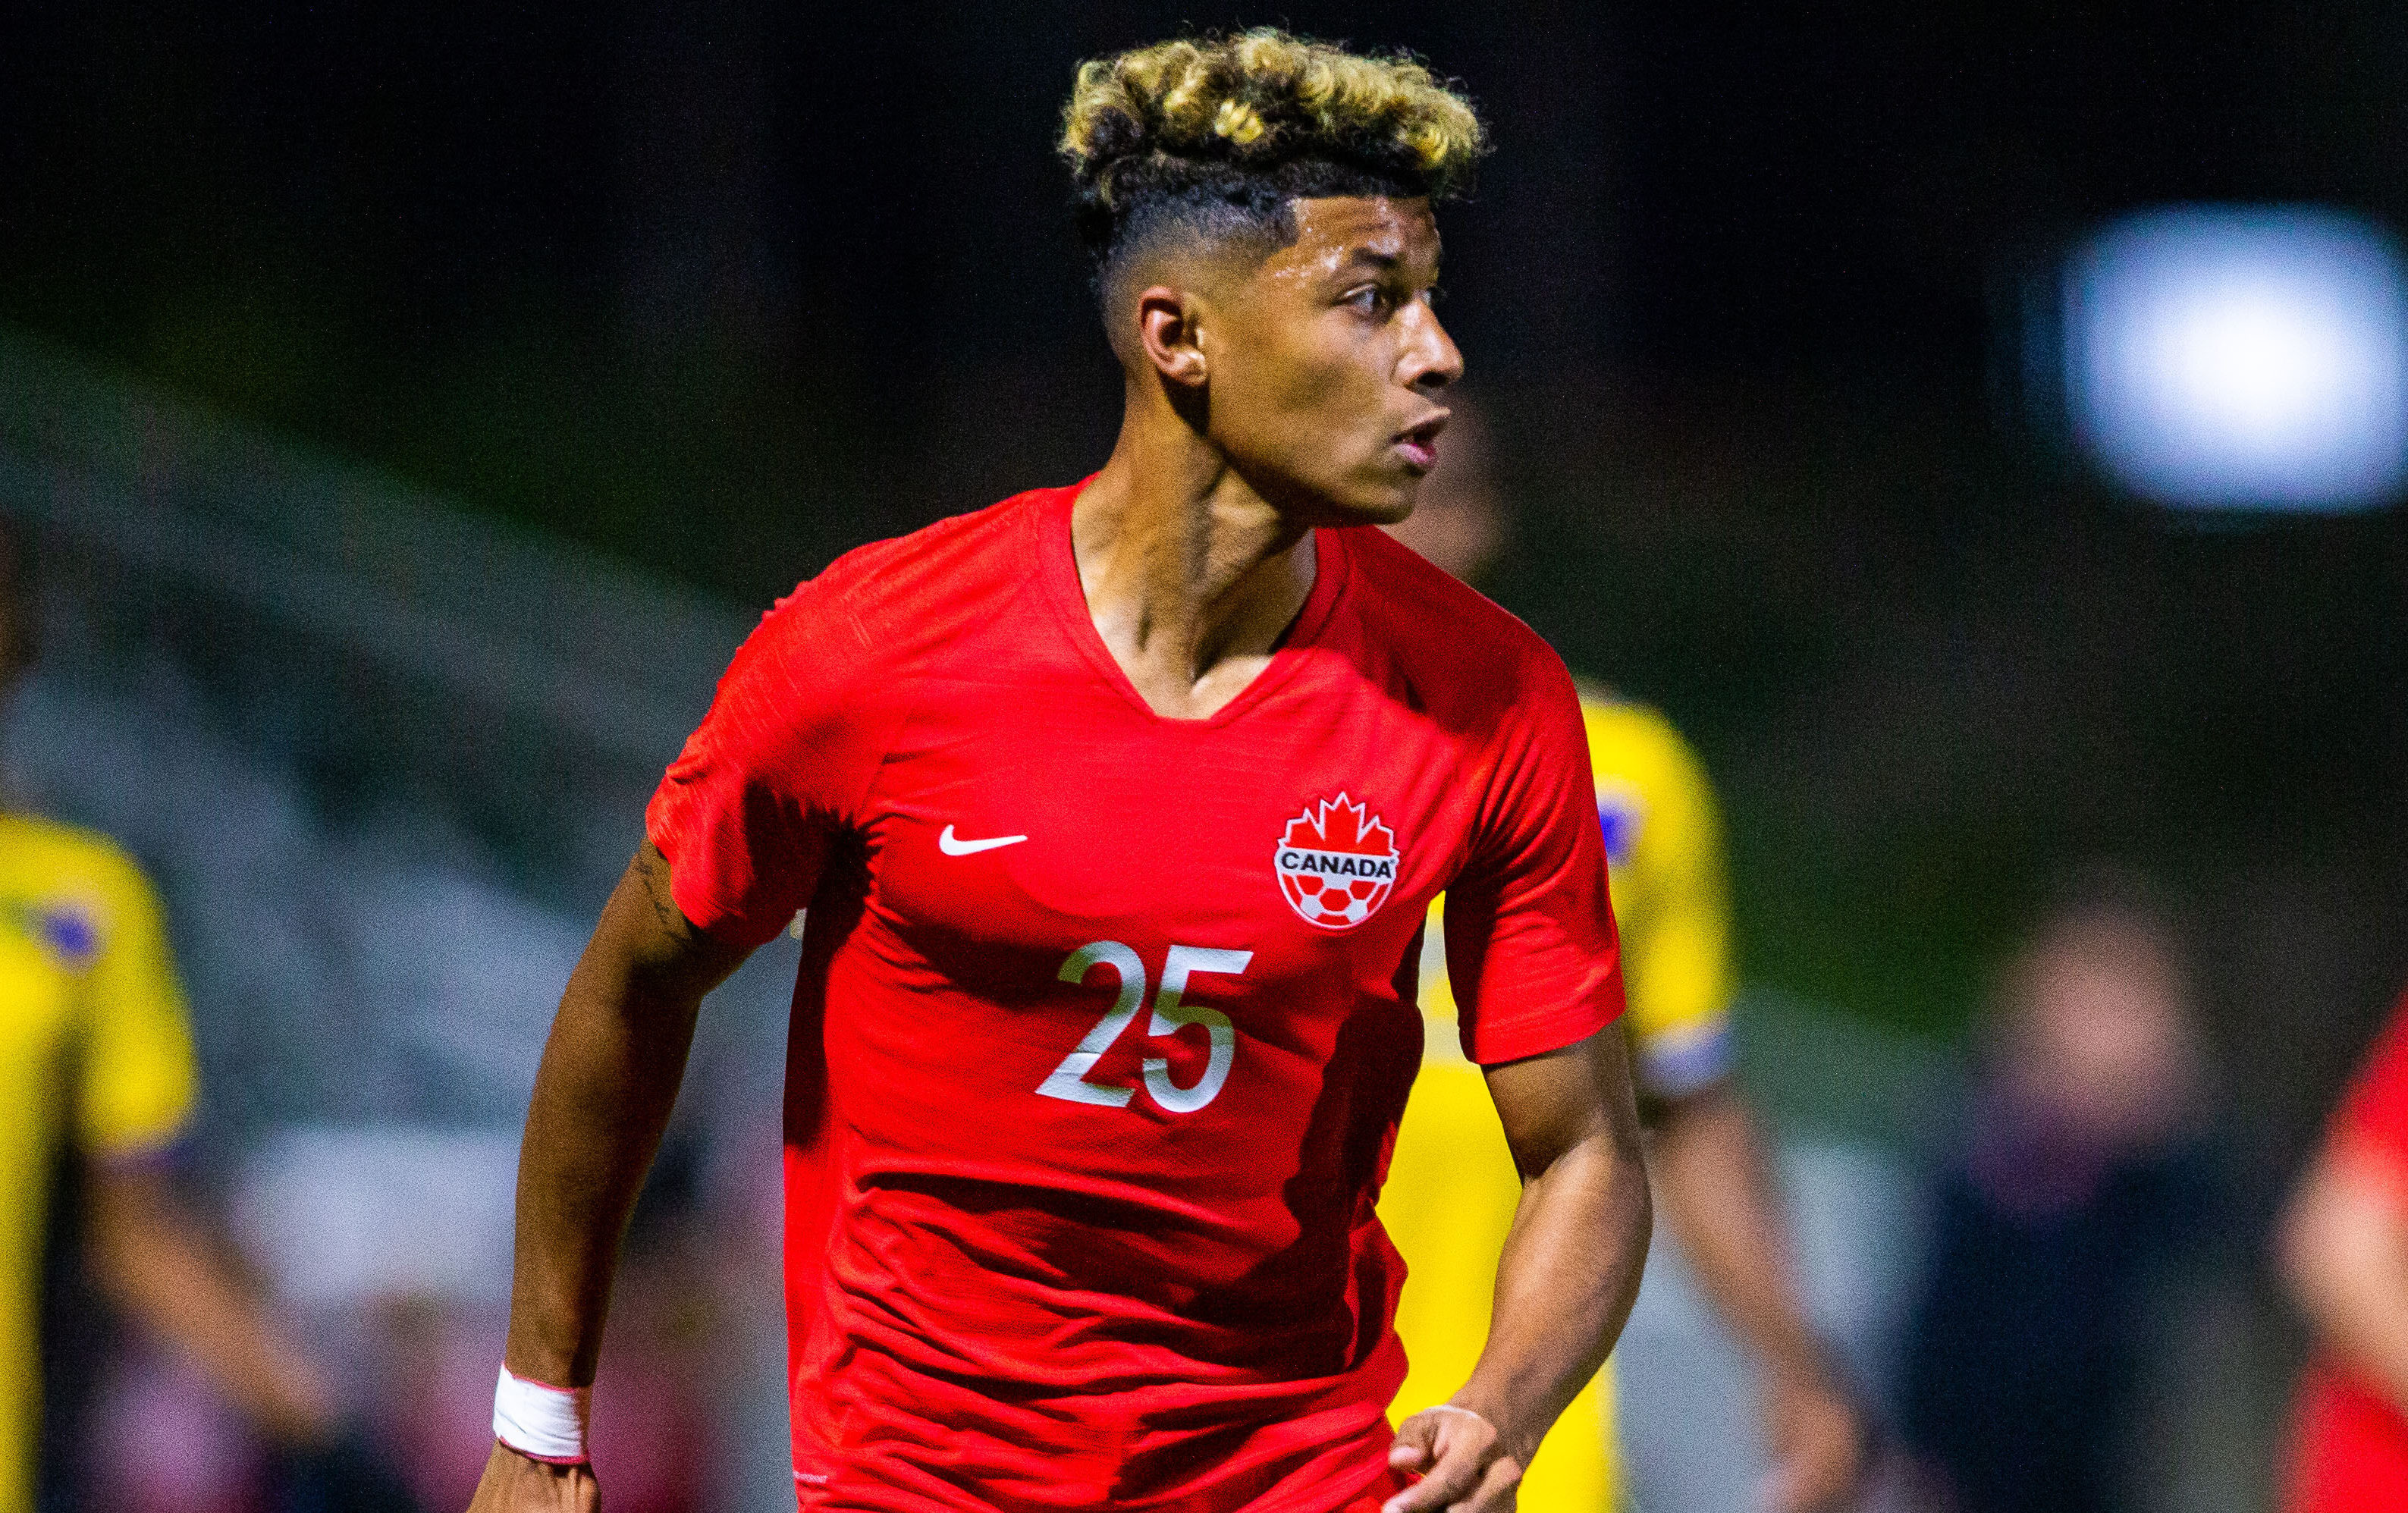 Canada S Under 23 Team Set For Concacaf Men S Olympic Qualifying Tournament Canadian Premier League